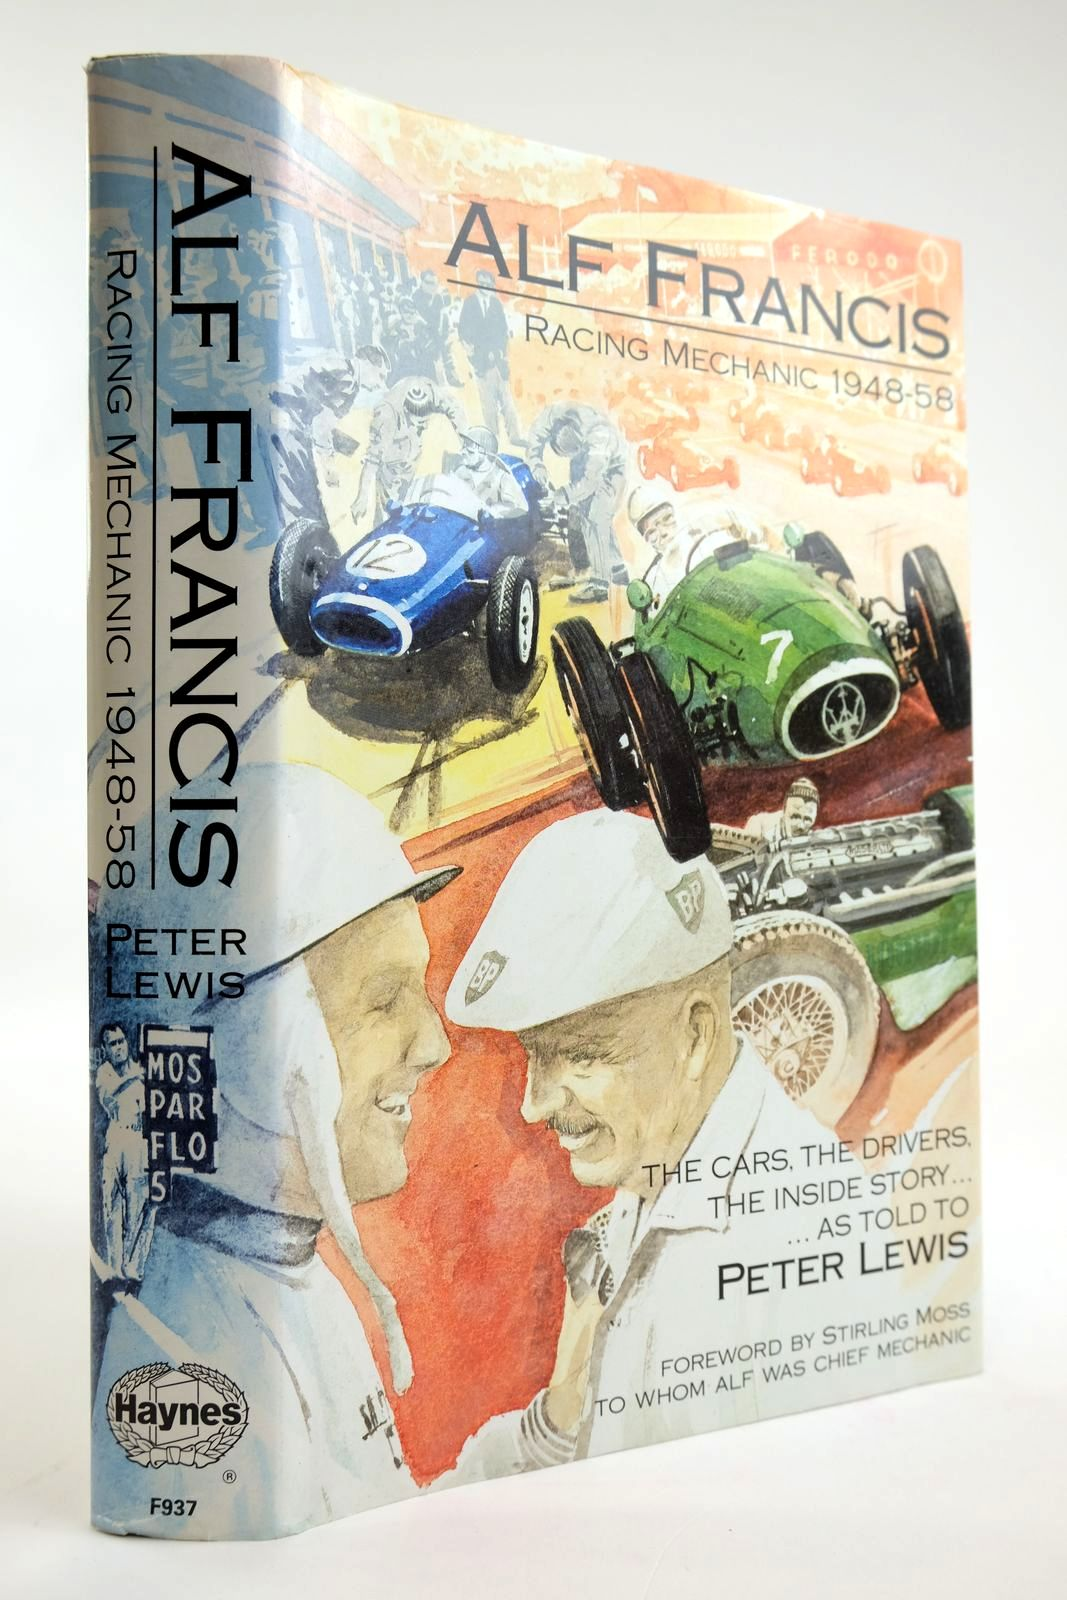 Photo of ALF FRANCIS RACING MECHANIC 1948-1958 written by Francis, Alf Lewis, Peter Moss, Stirling published by Haynes (STOCK CODE: 2133530)  for sale by Stella & Rose's Books